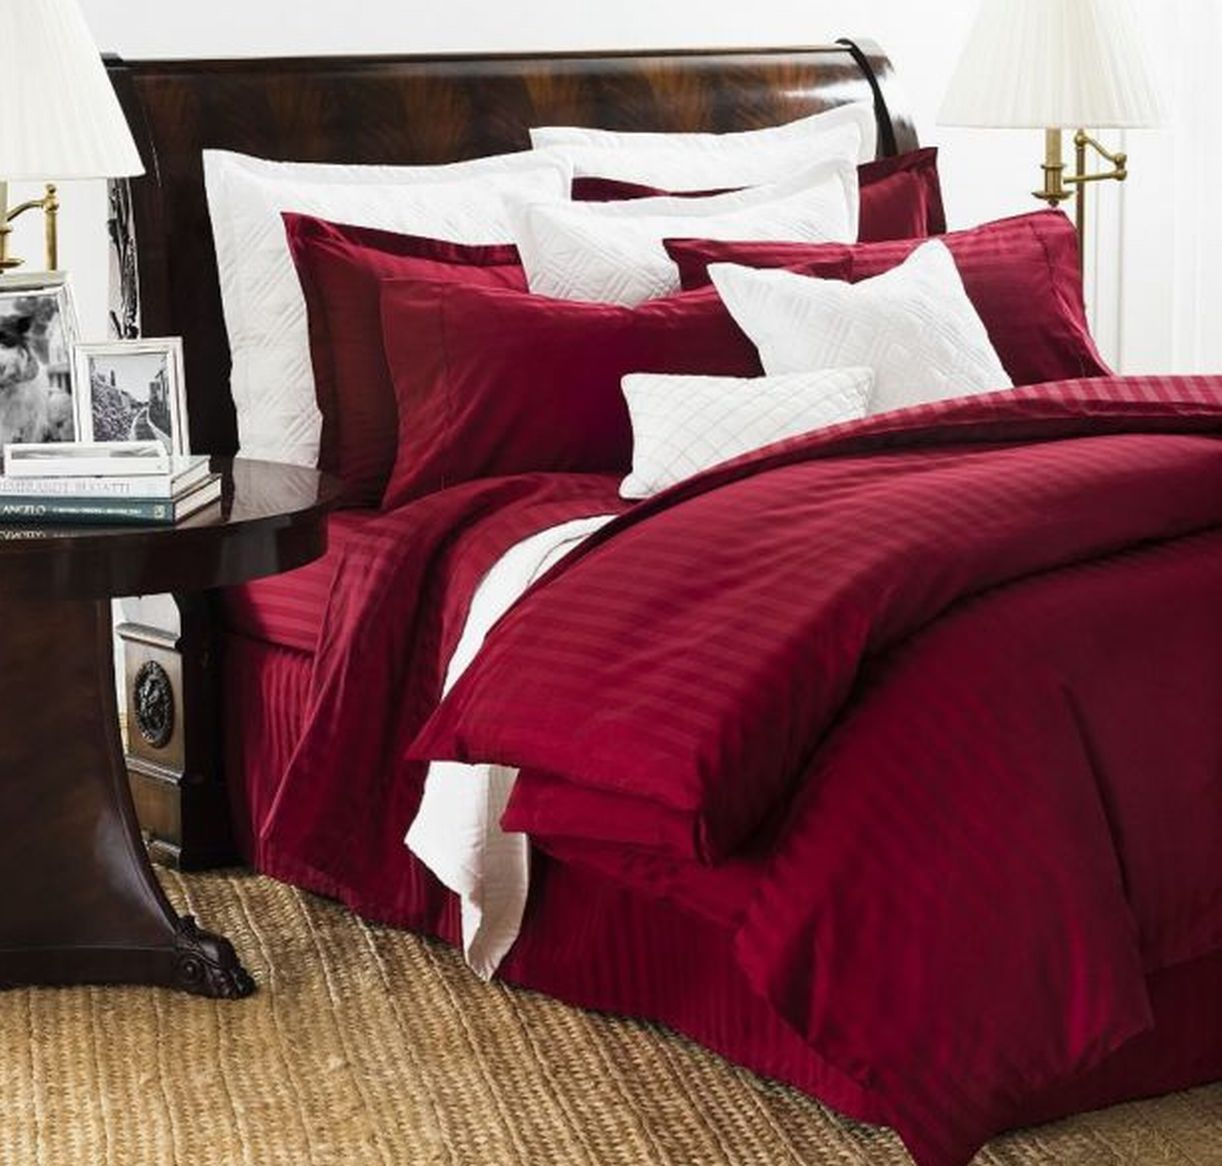 Chaps Home Damask Stripe Full Queen Red Comforter Set with Shams, Cotton